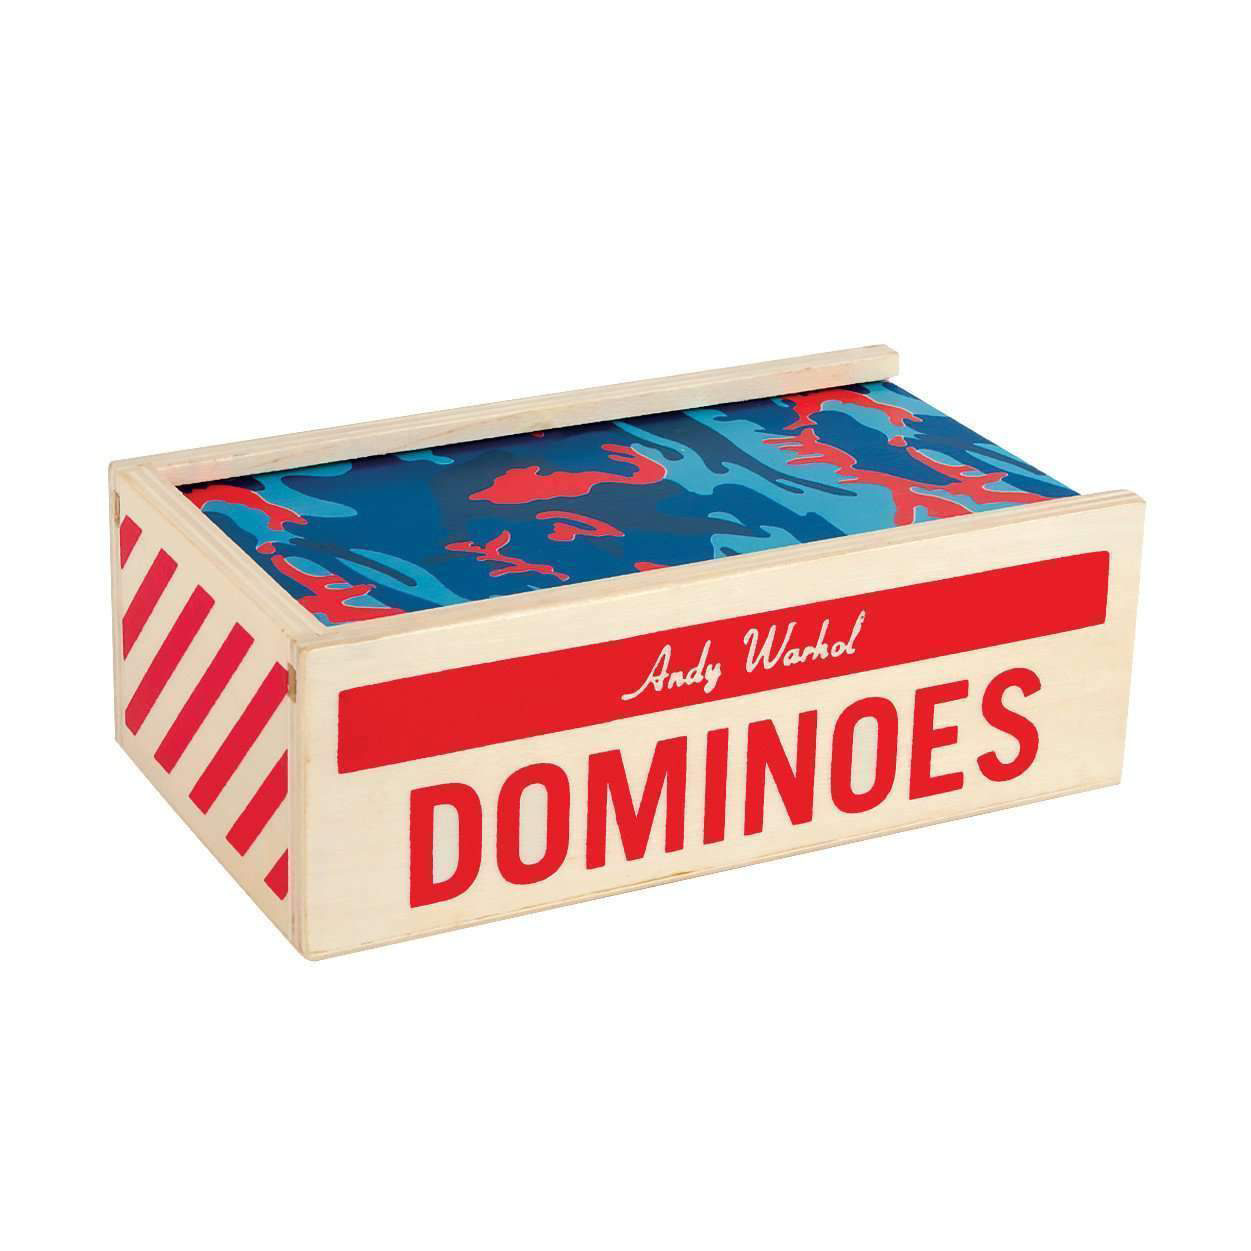 ANDY WARHOL WOODEN DOMINOES - ARTE STAR